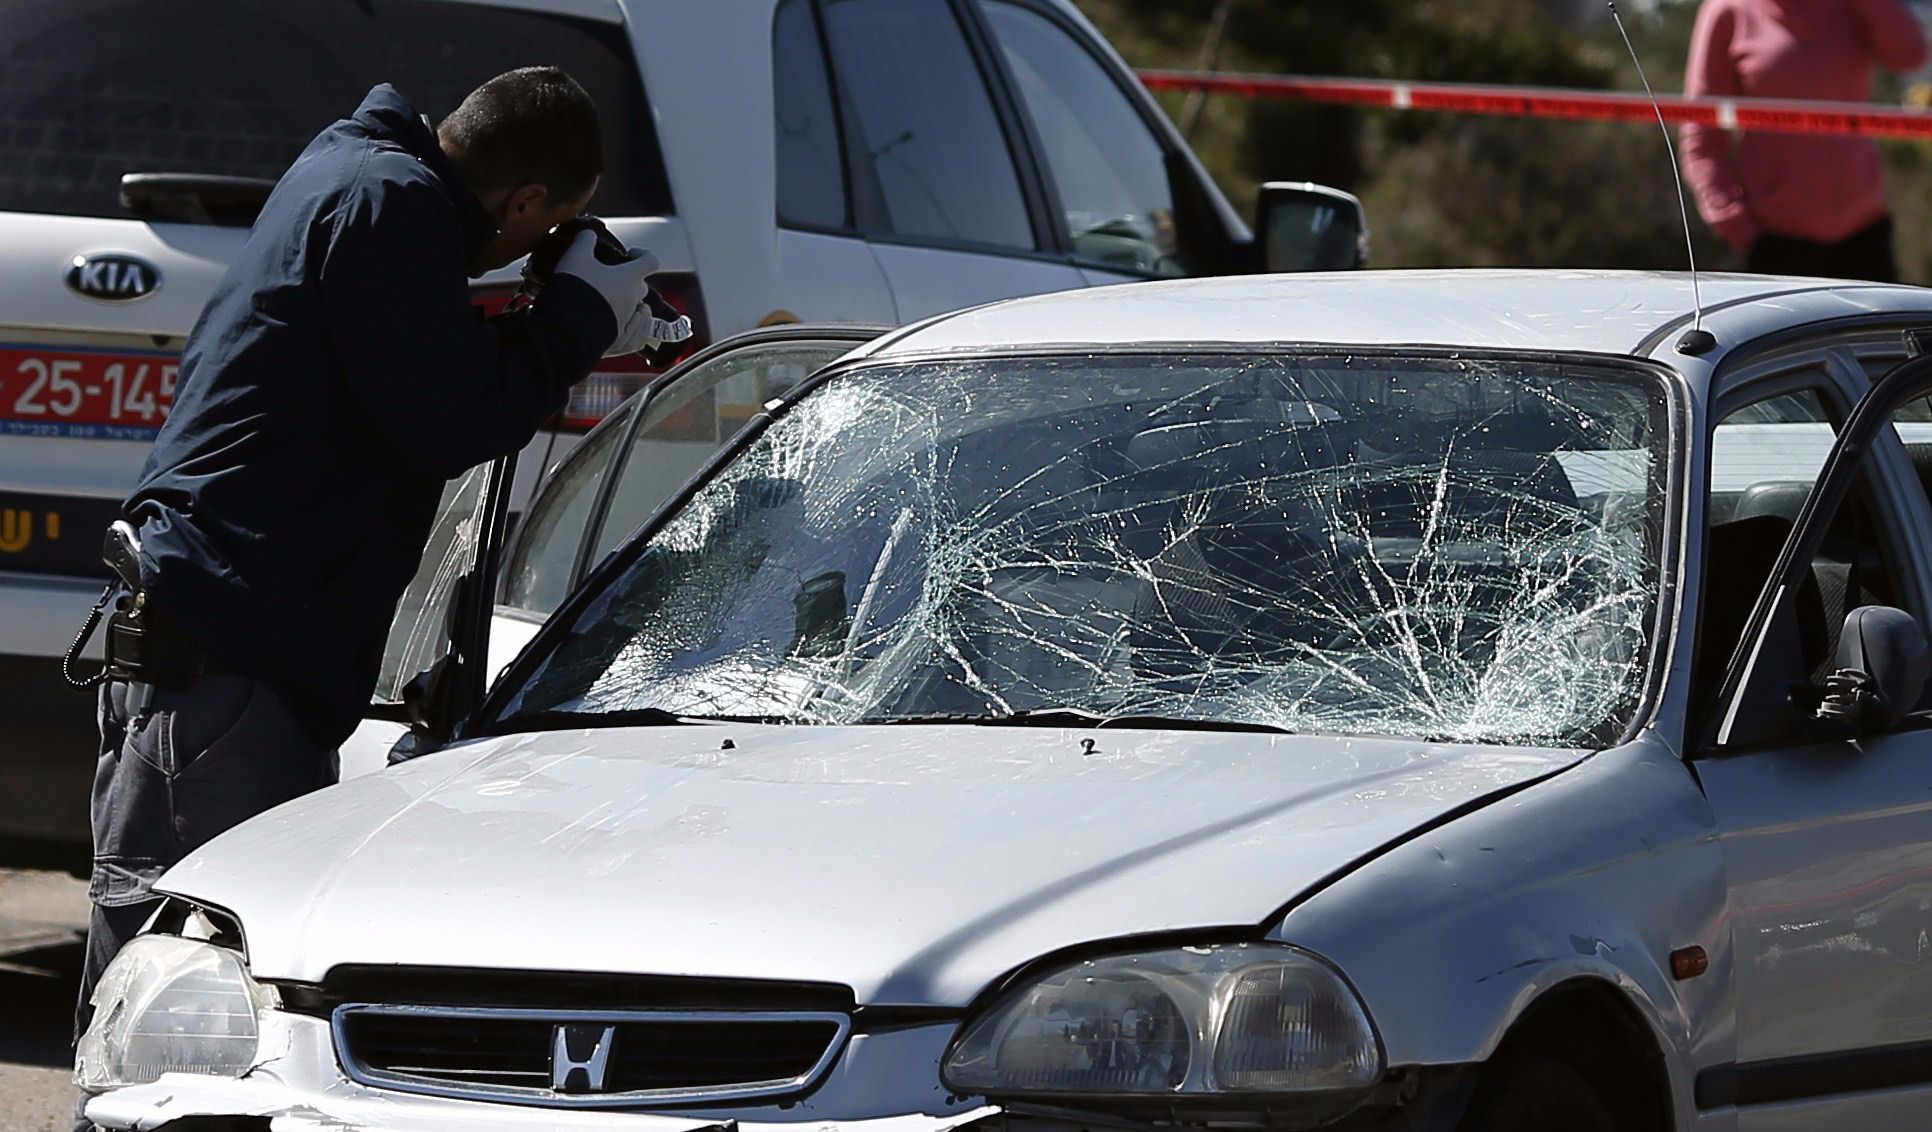 Israeli forensic police inspect a car that ploughed into pedestrians in Jerusalem injuring several people during a similar attack in March 2015.